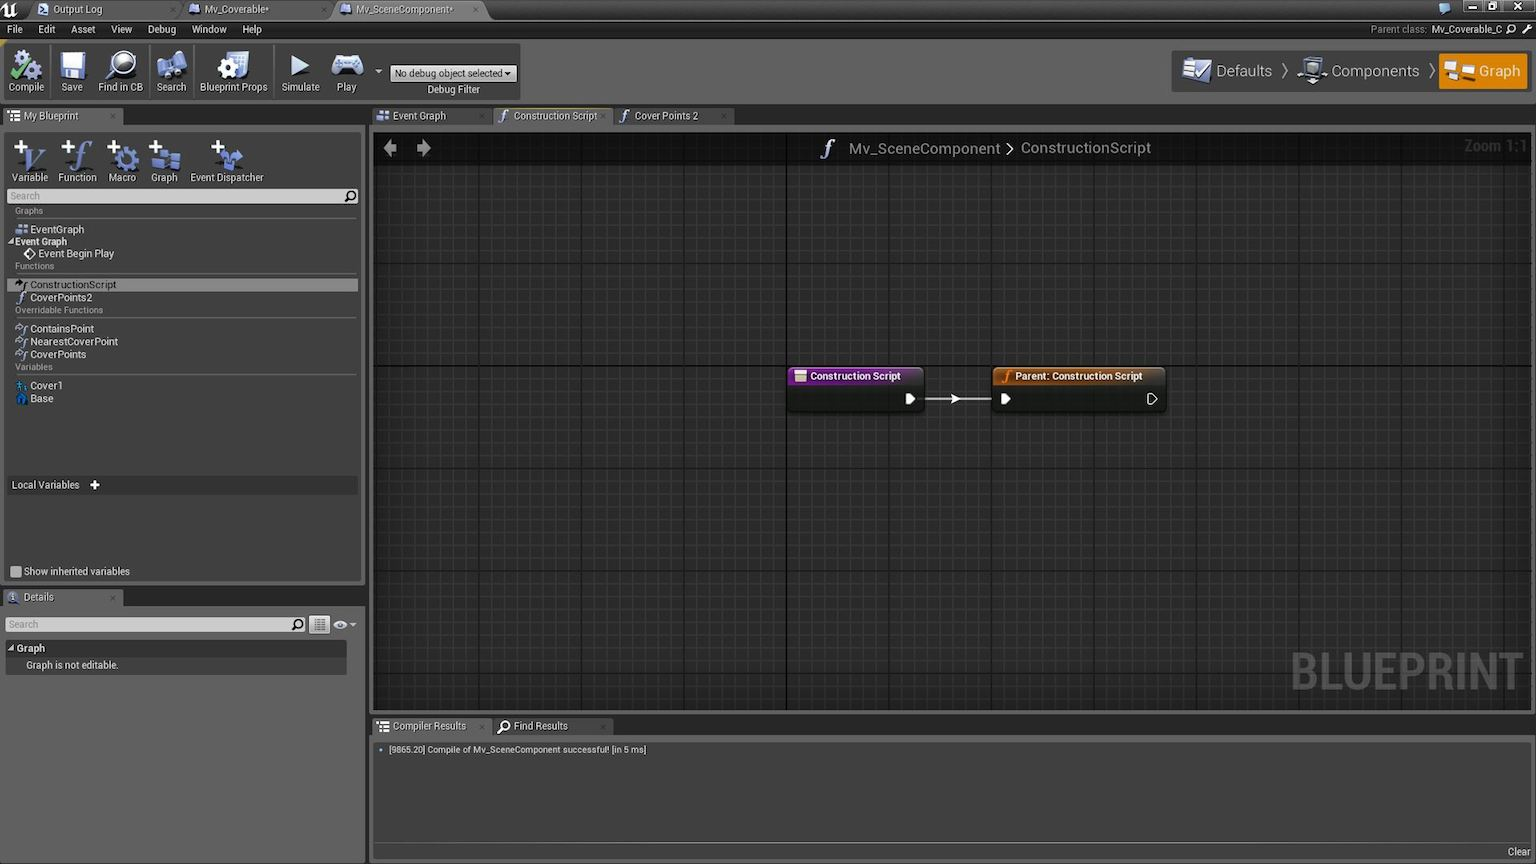 Using Blueprints in Unreal Engine 4